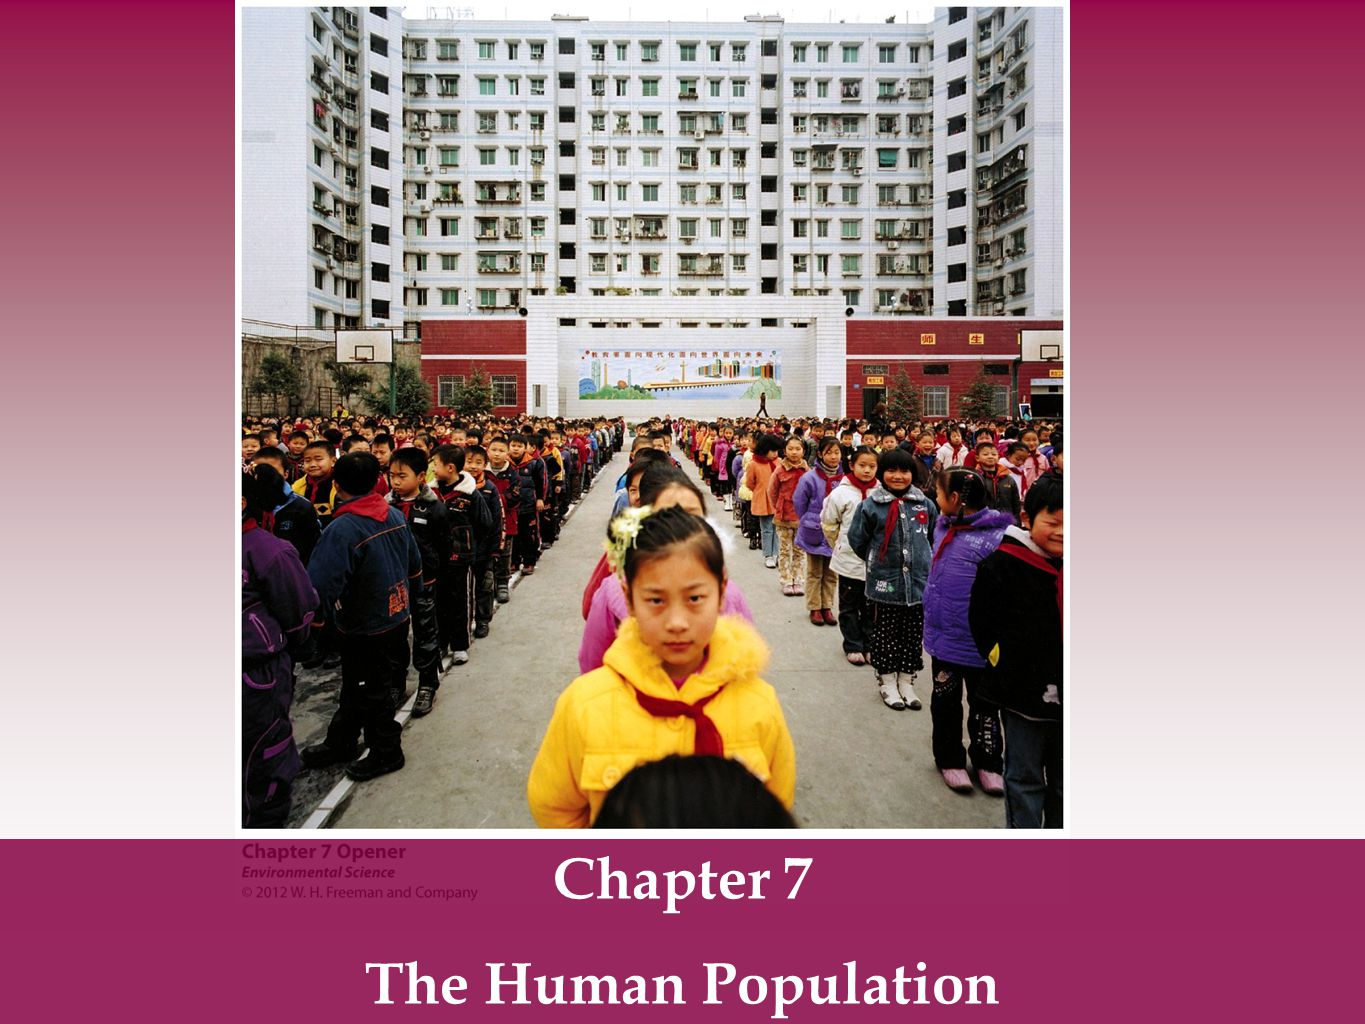 Chapter 7 The Human Population